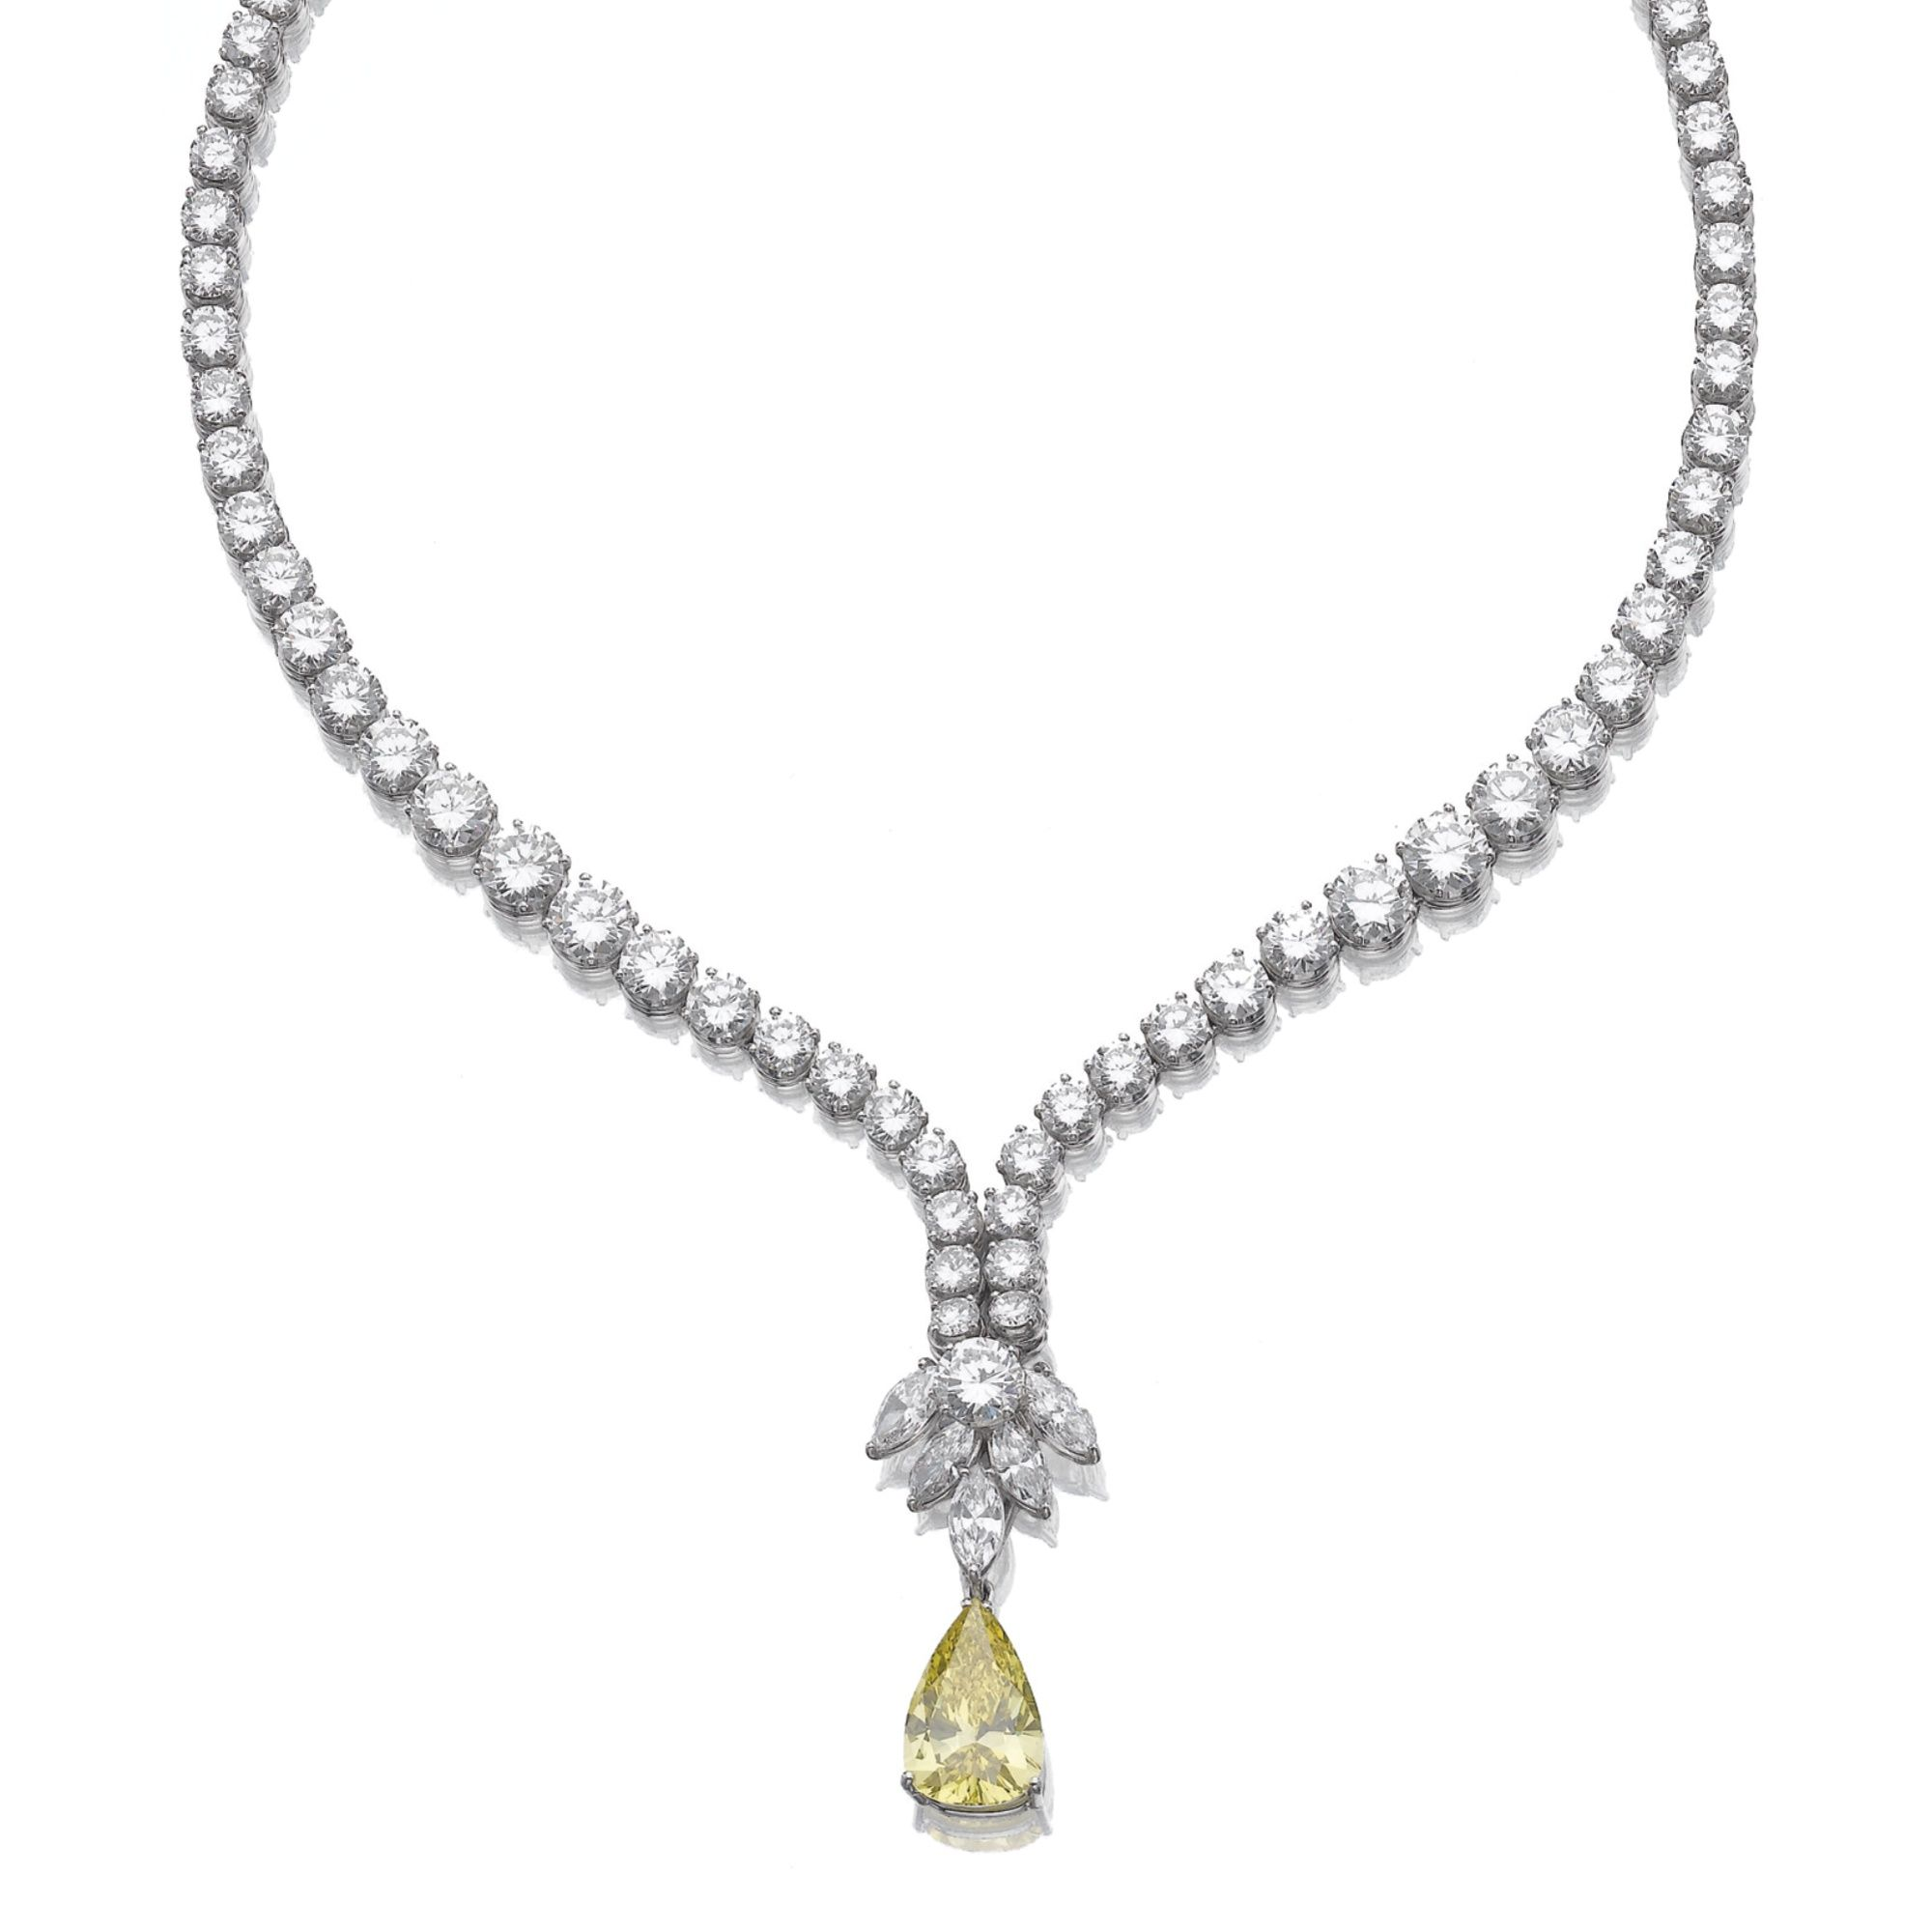 White diamond necklace featuring a yellow diamond pendant